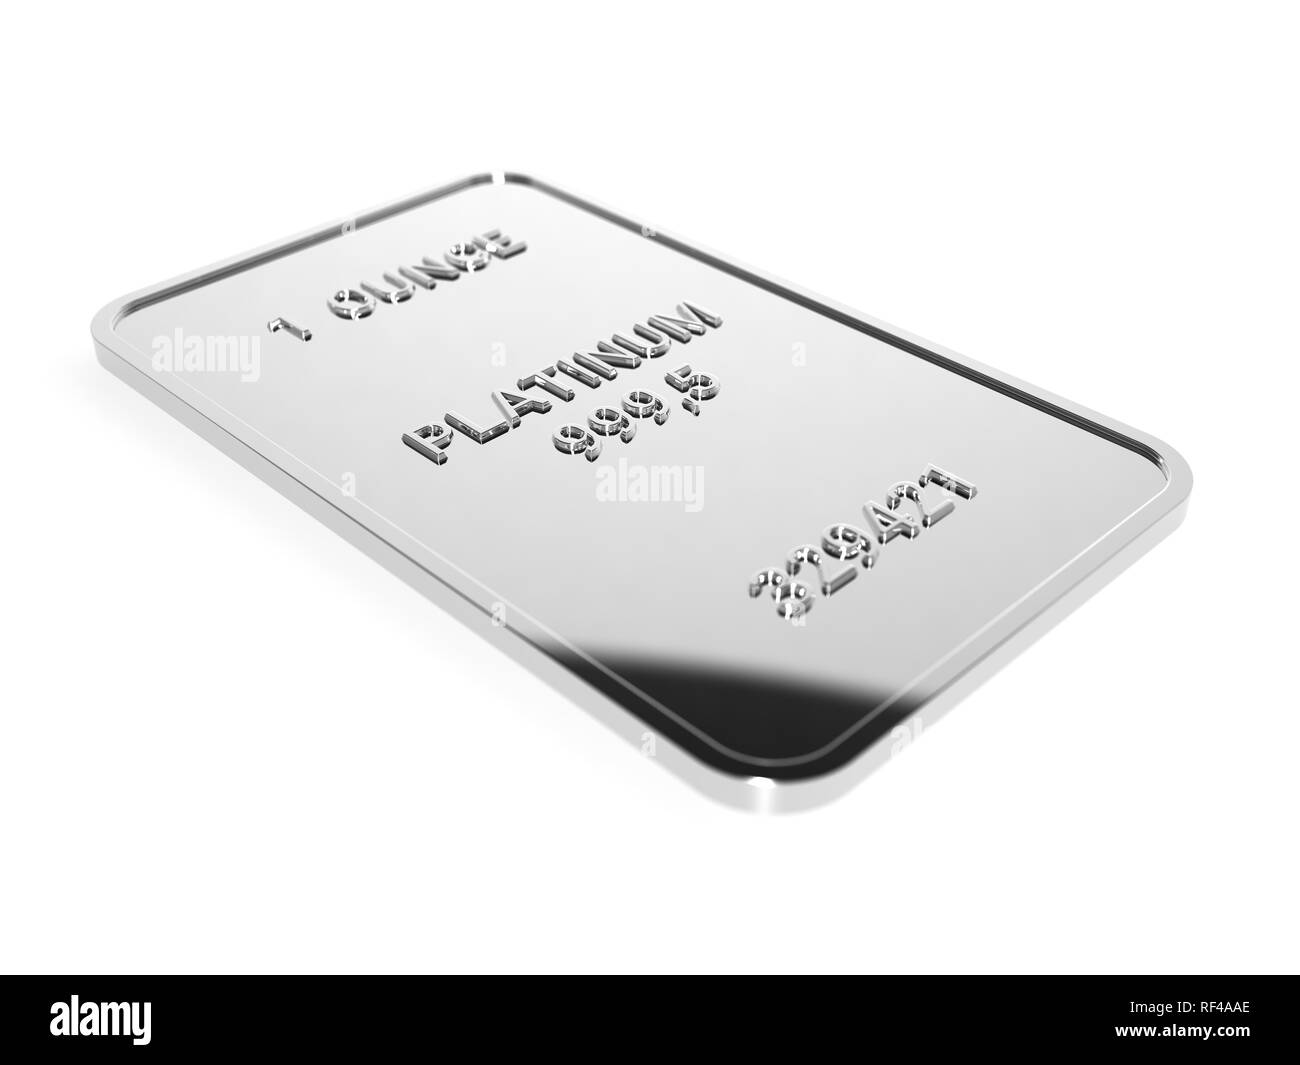 Platinum - Stock Image